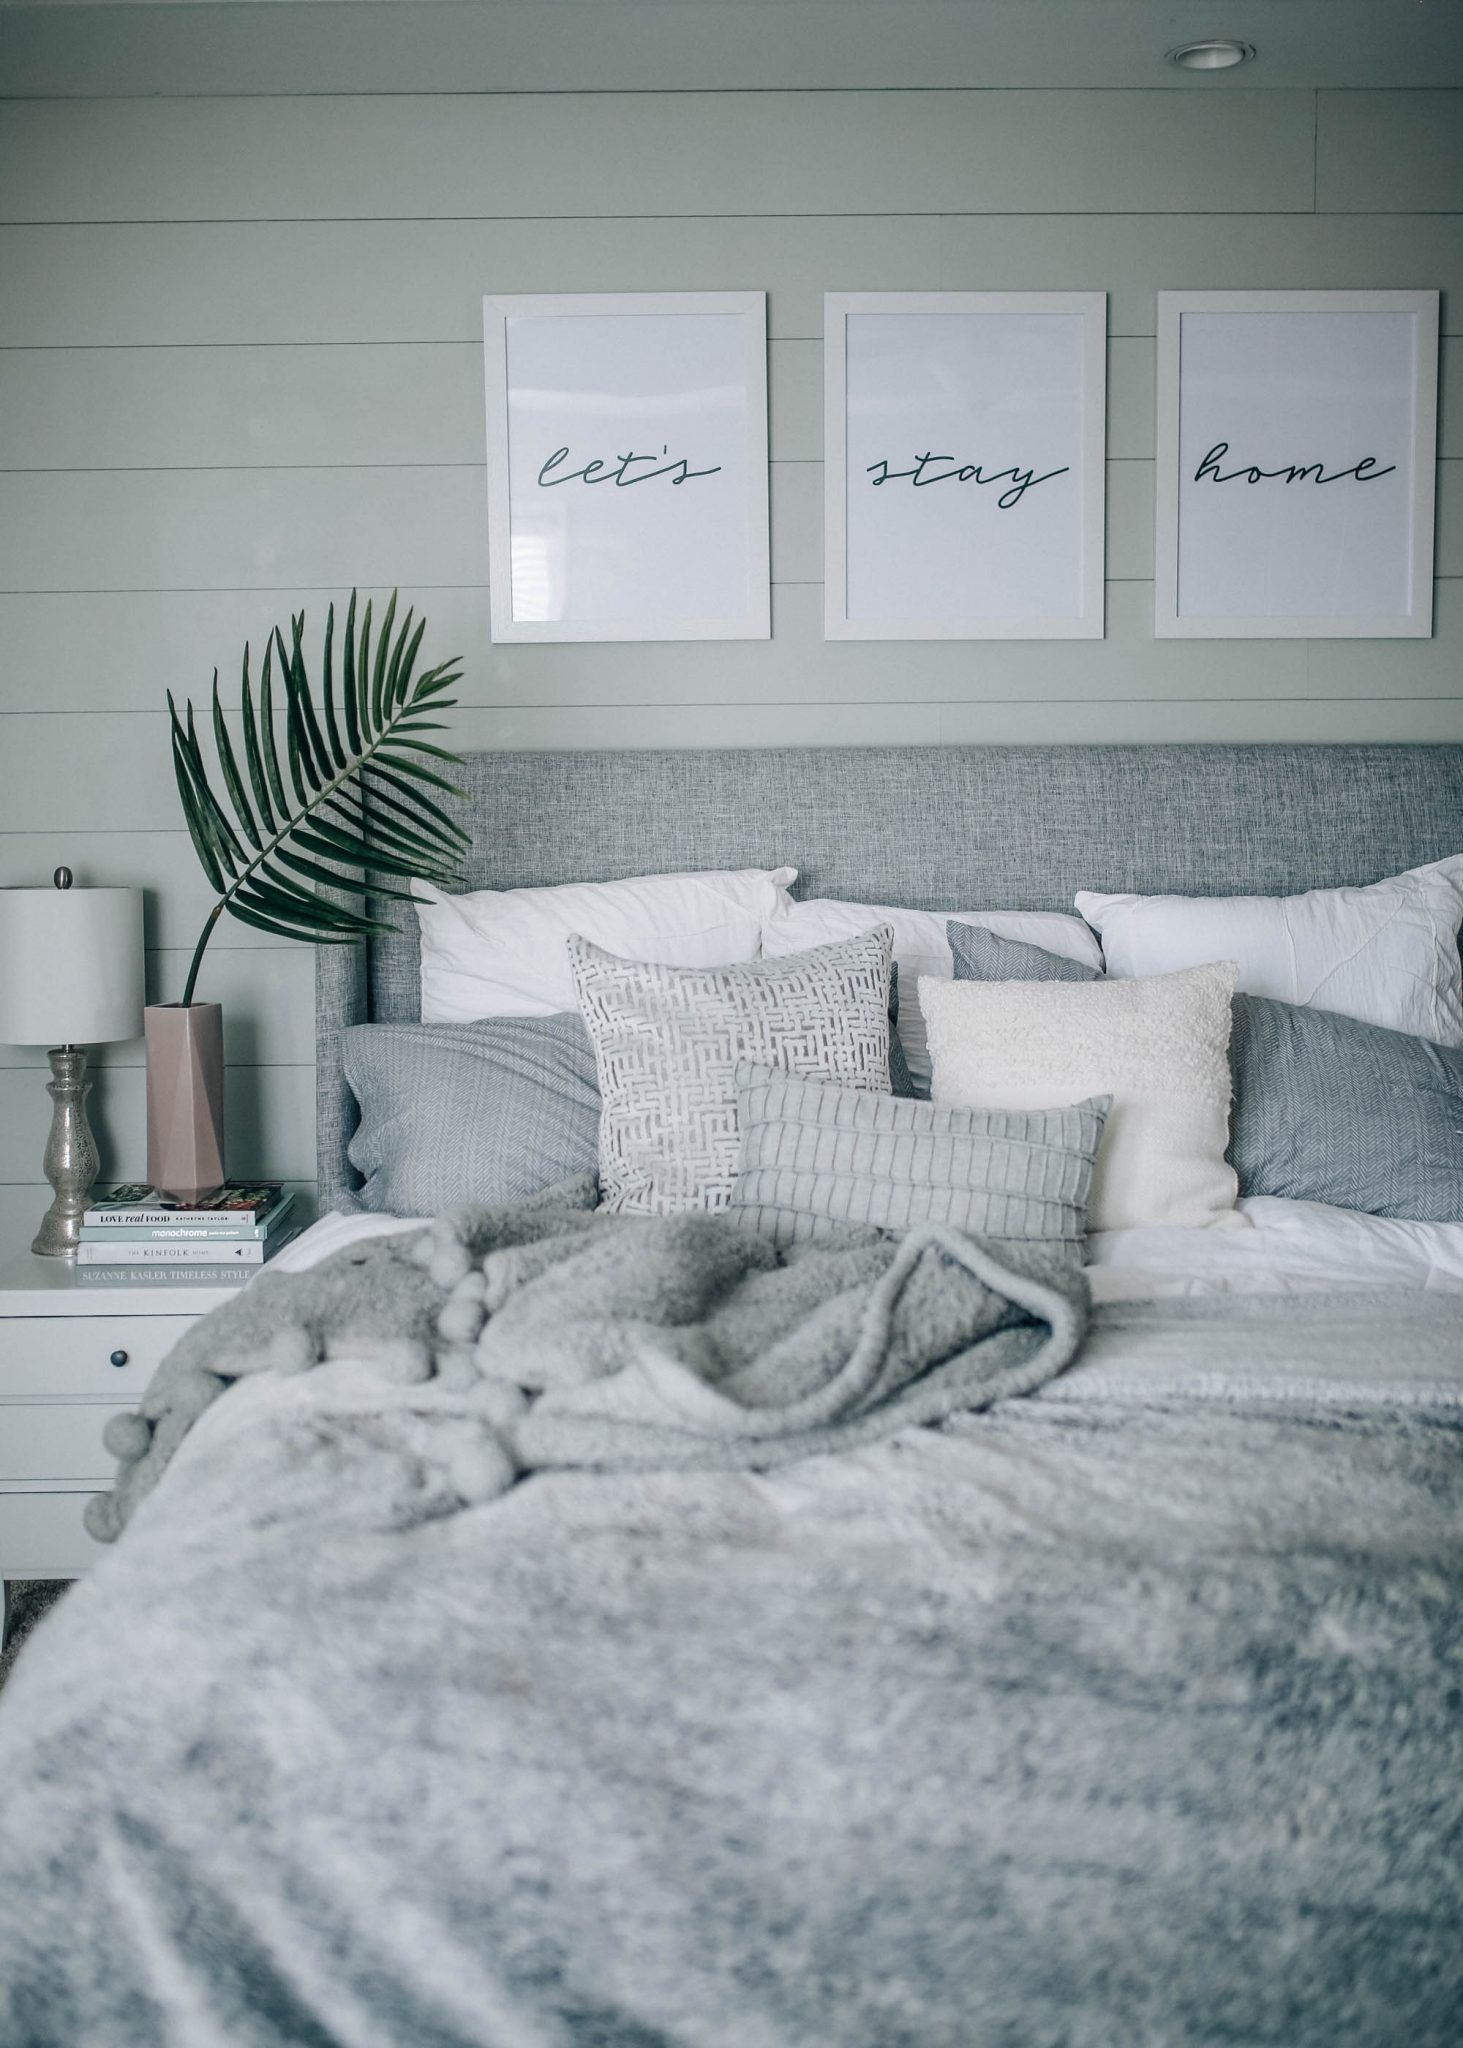 Recent Bedroom Decor Updates - Pretty in the Pines Lifestyle Blog